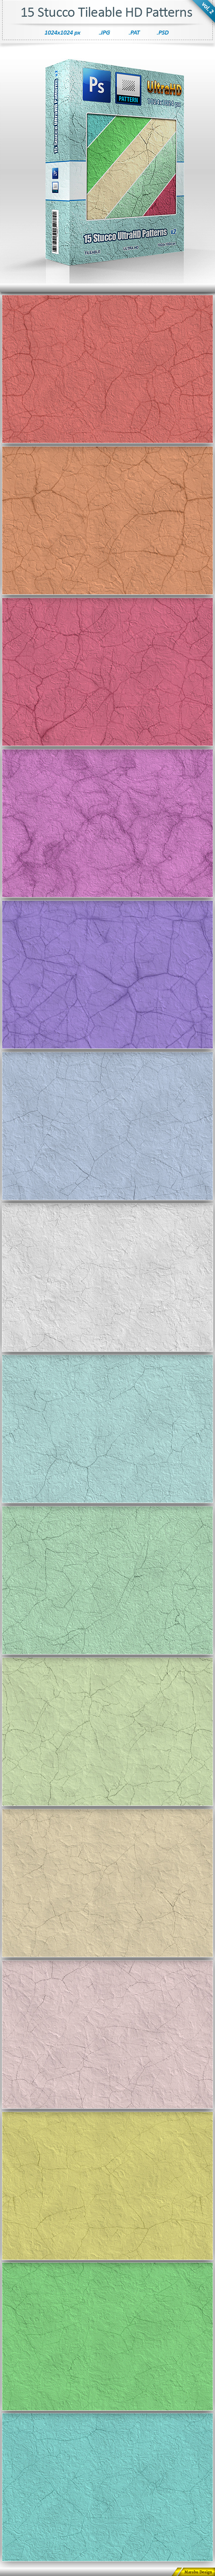 Stucco Tileable Patterns vol 2